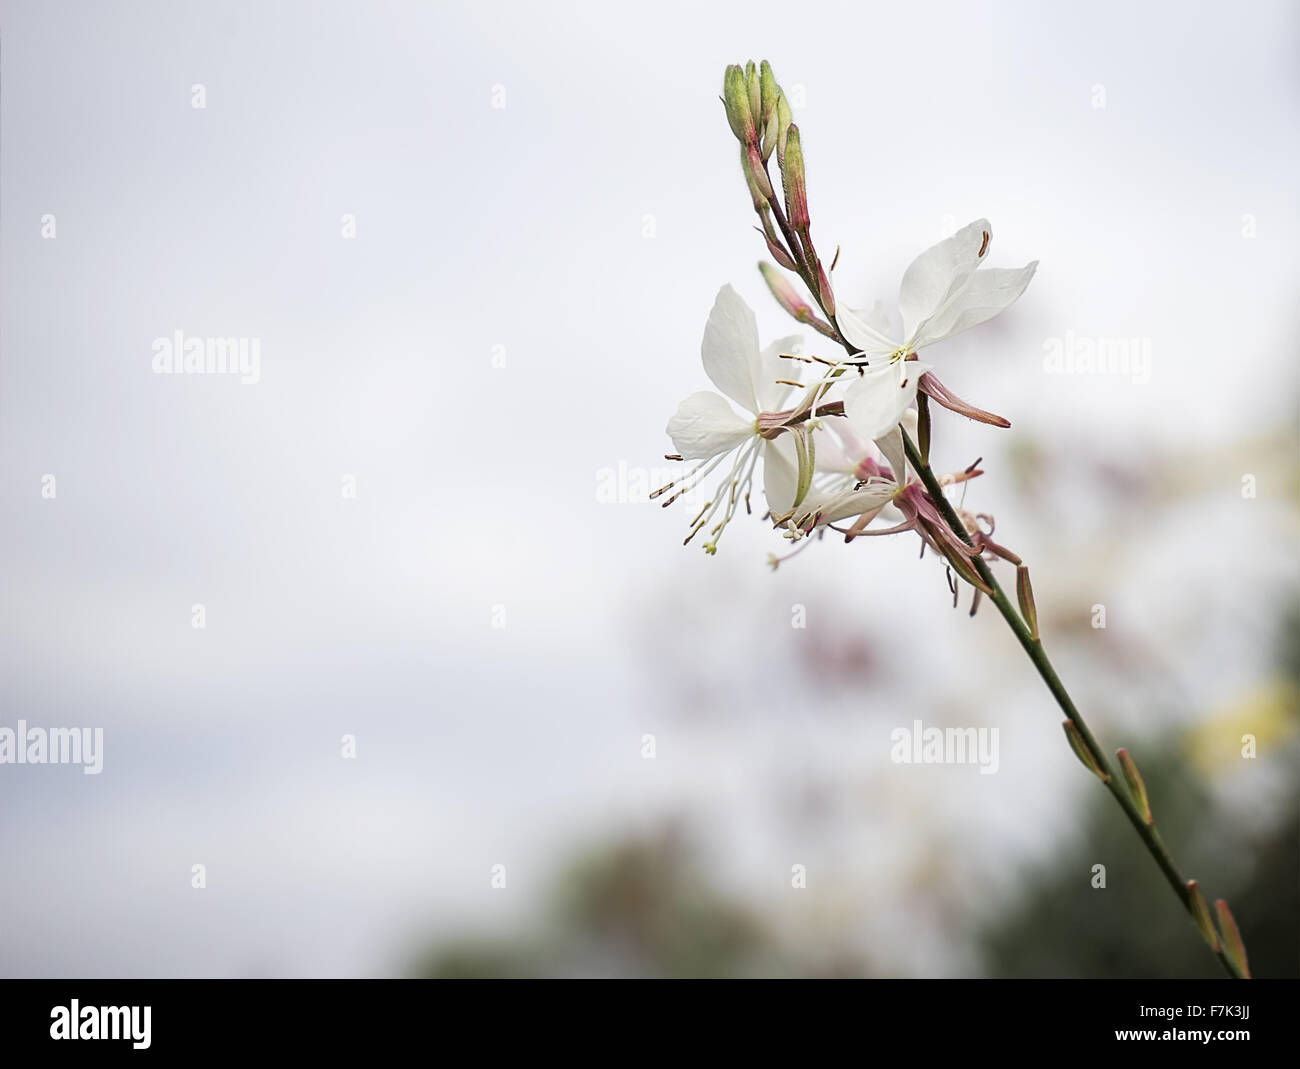 Gaura flower or butterfly bush with neutral copy-space background suitable for mourning condolence and sympathy - Stock Image